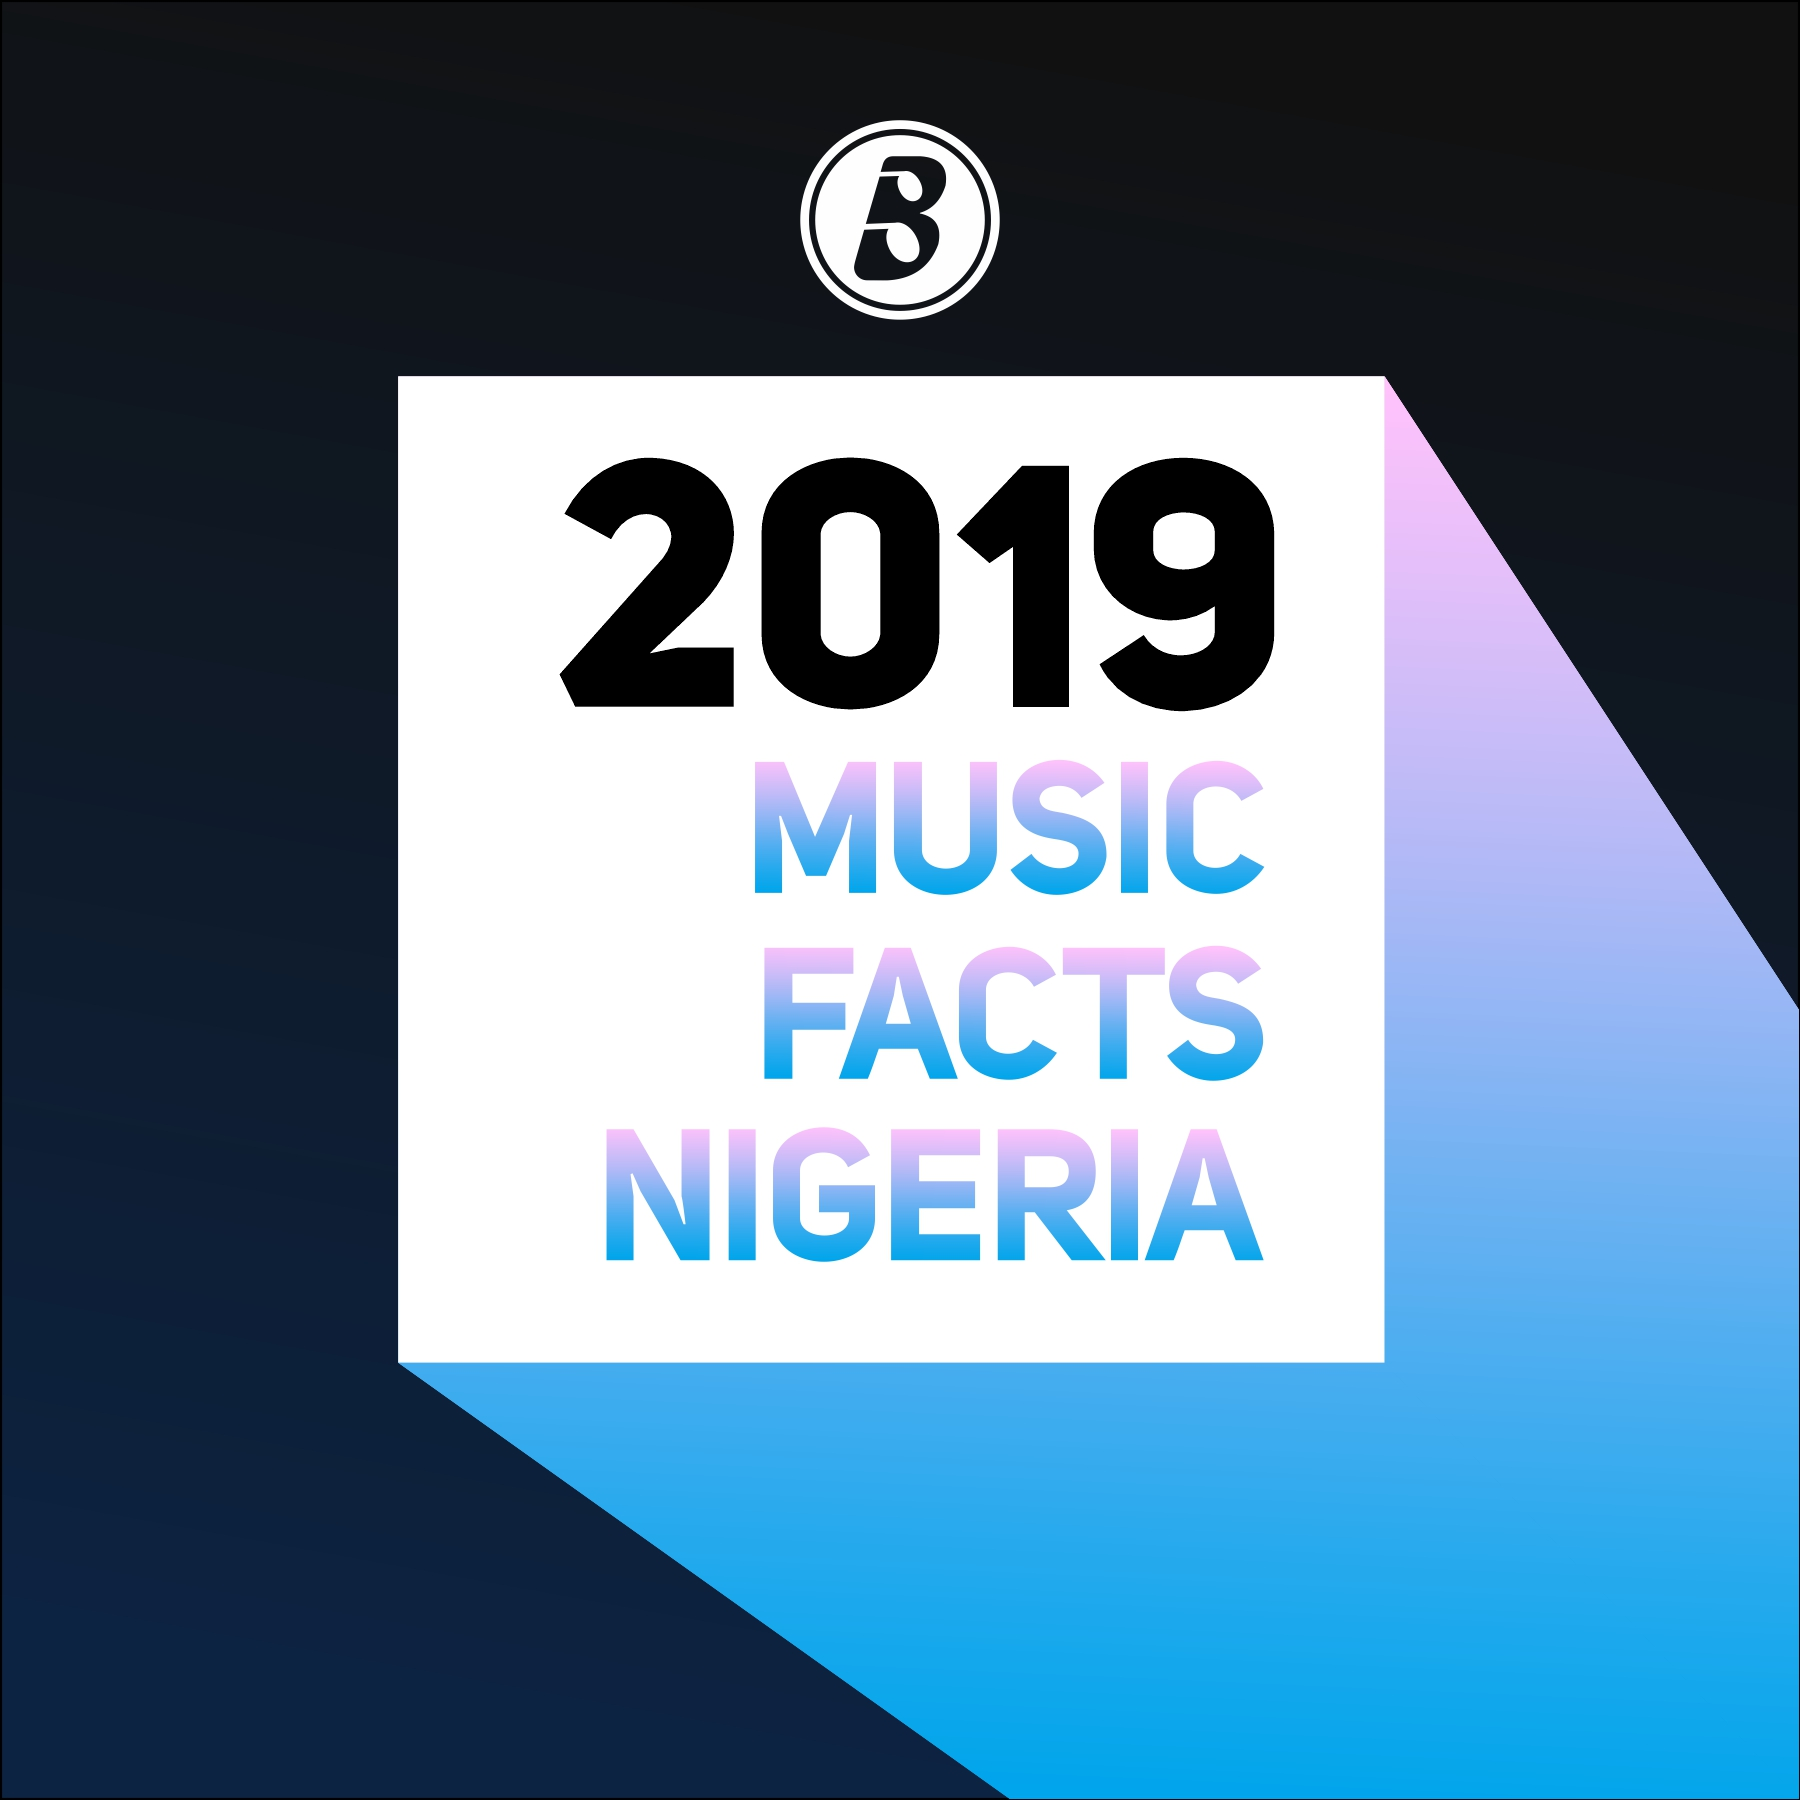 Boomplay Presents: 2019 Music Facts Nigeria 2019